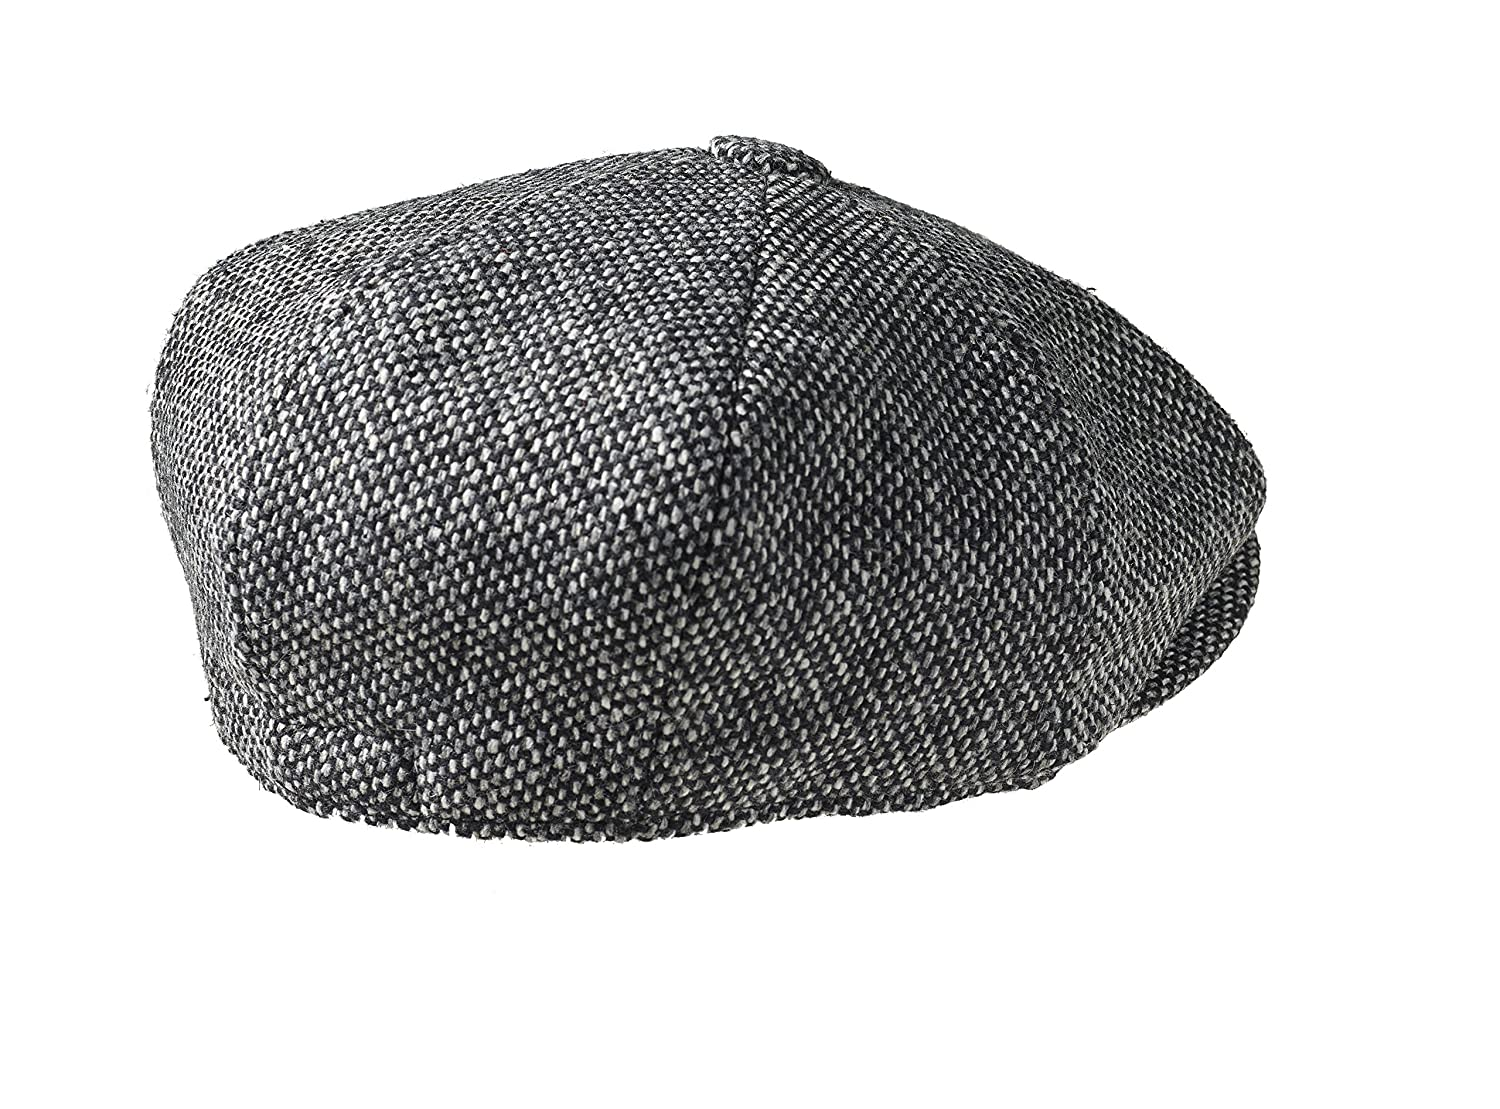 Peaky Blinders Men s 8 Piece  Newsboy  Style Flat Cap Wool at Amazon Men s  Clothing store  e0ed55168e21